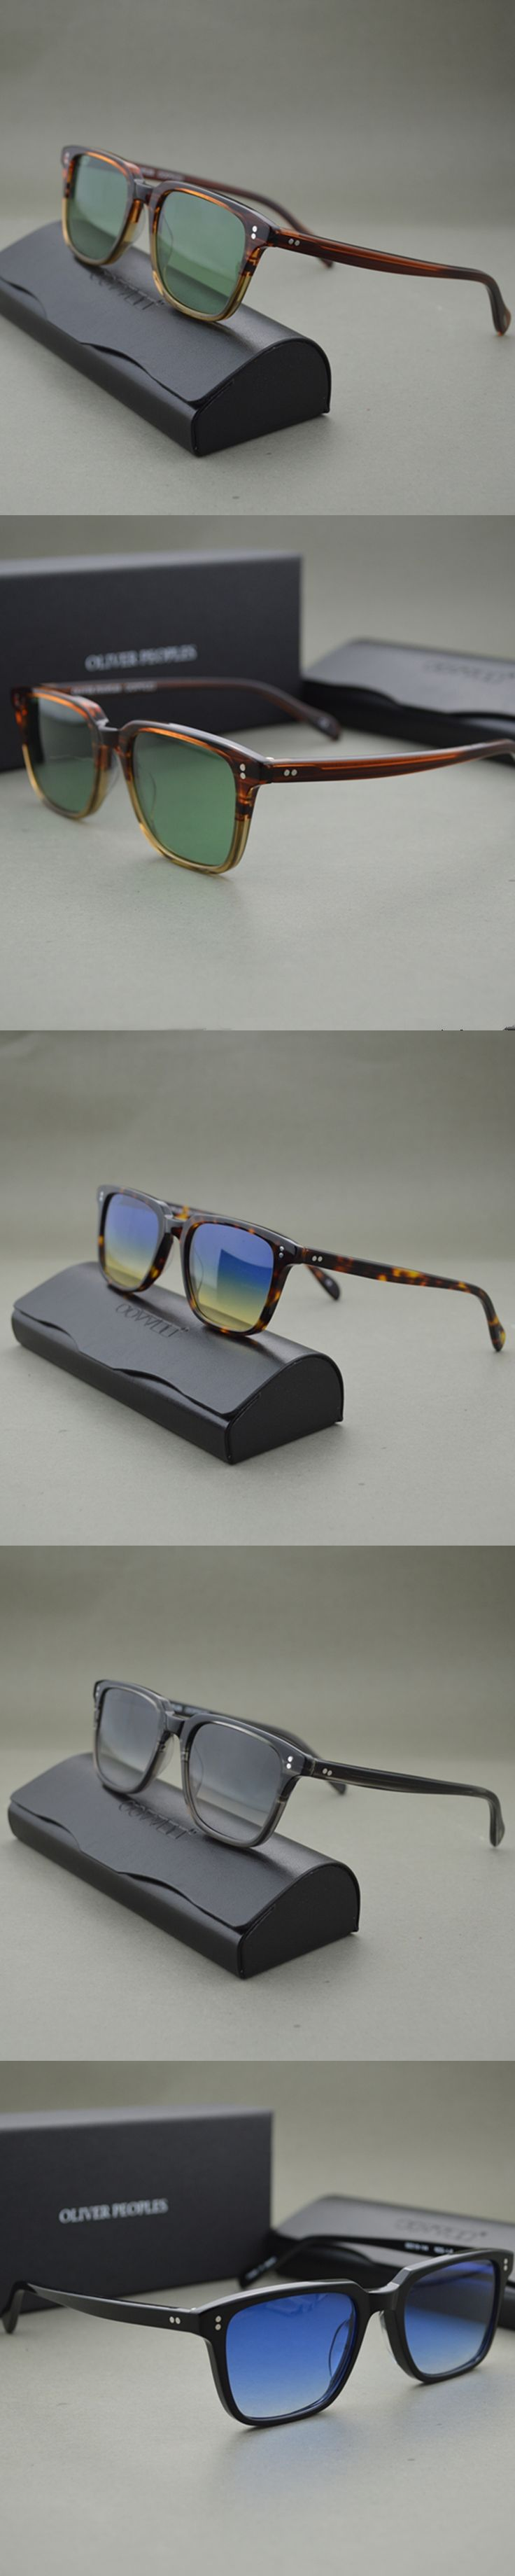 Retro Men's sunglasses Driving Outdoor men and women OV5031 NDG brown frame With green lenses color lenses oculos oliver peoples